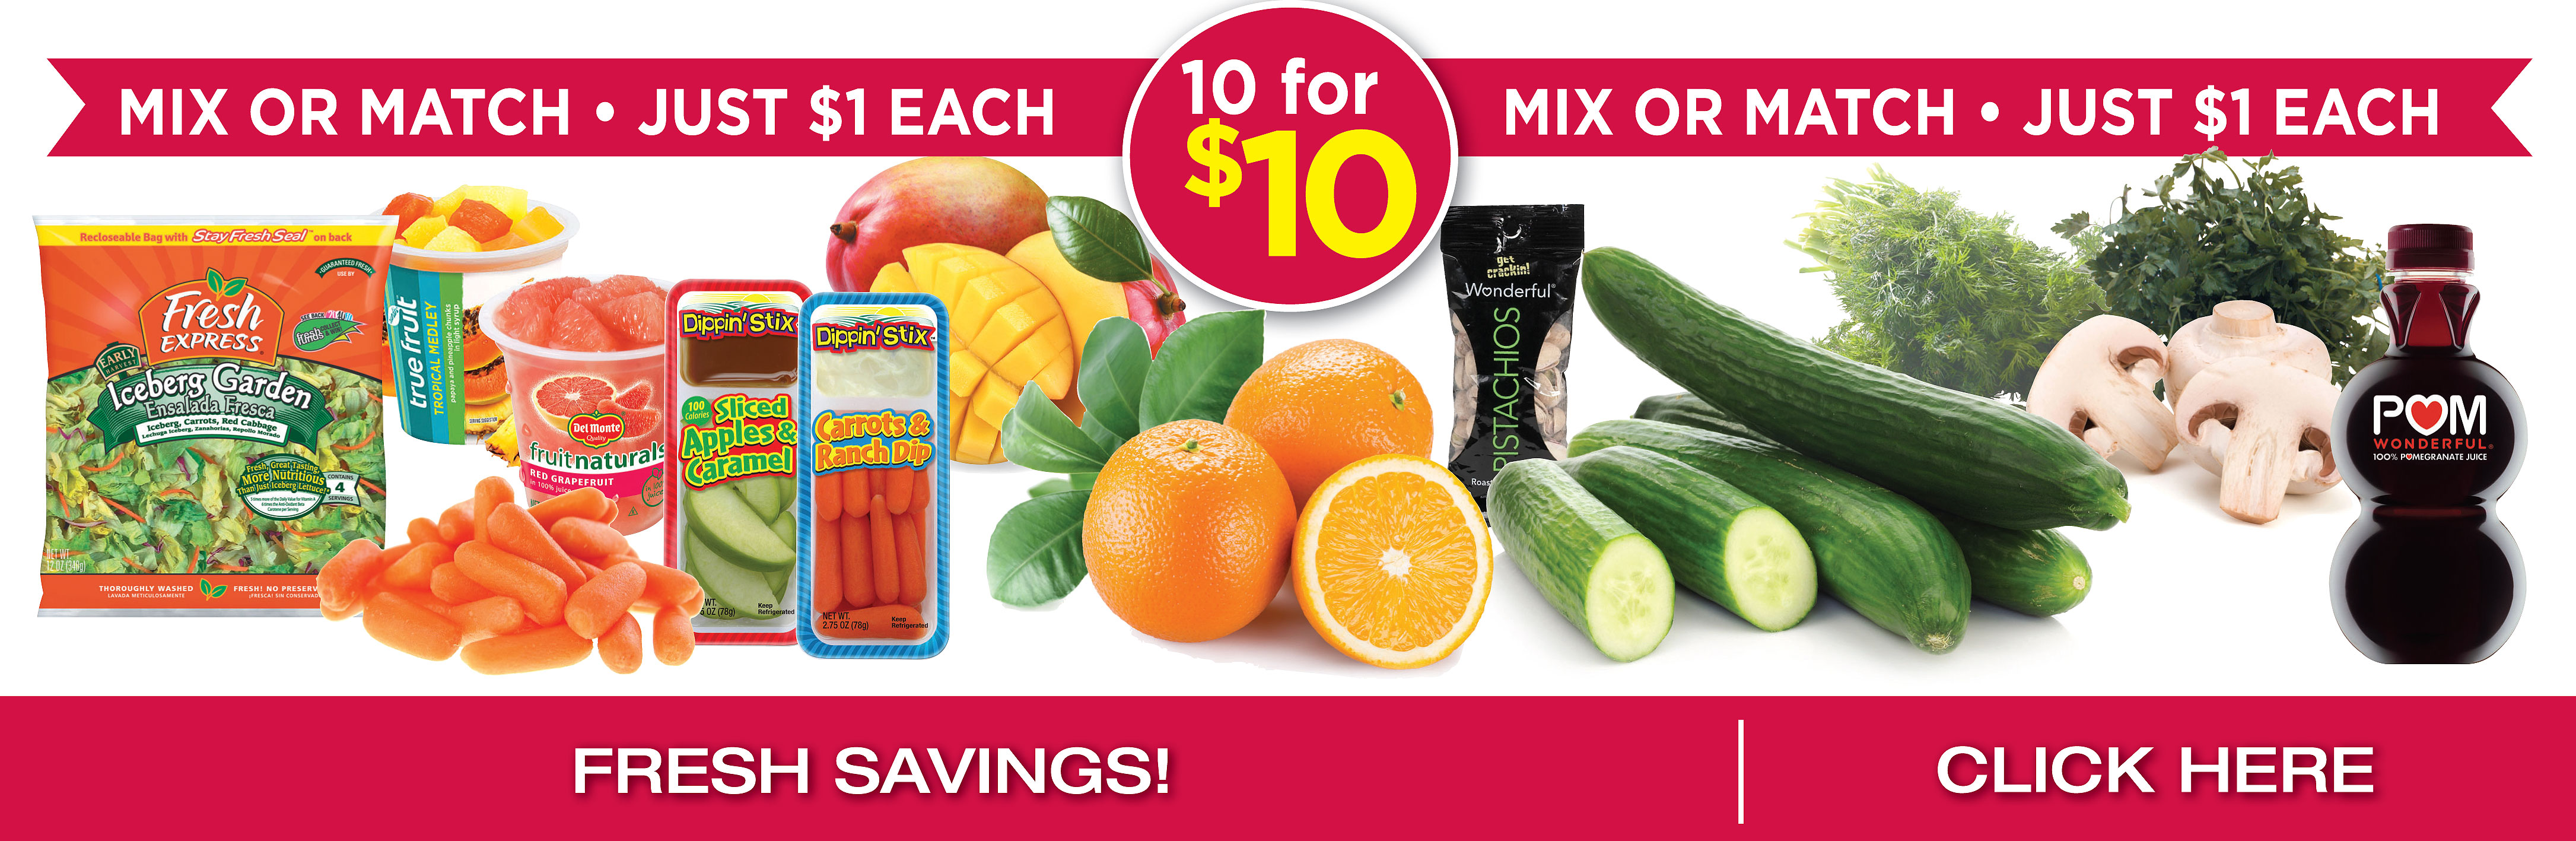 10 For $10 Produce Items - Mix Or Match